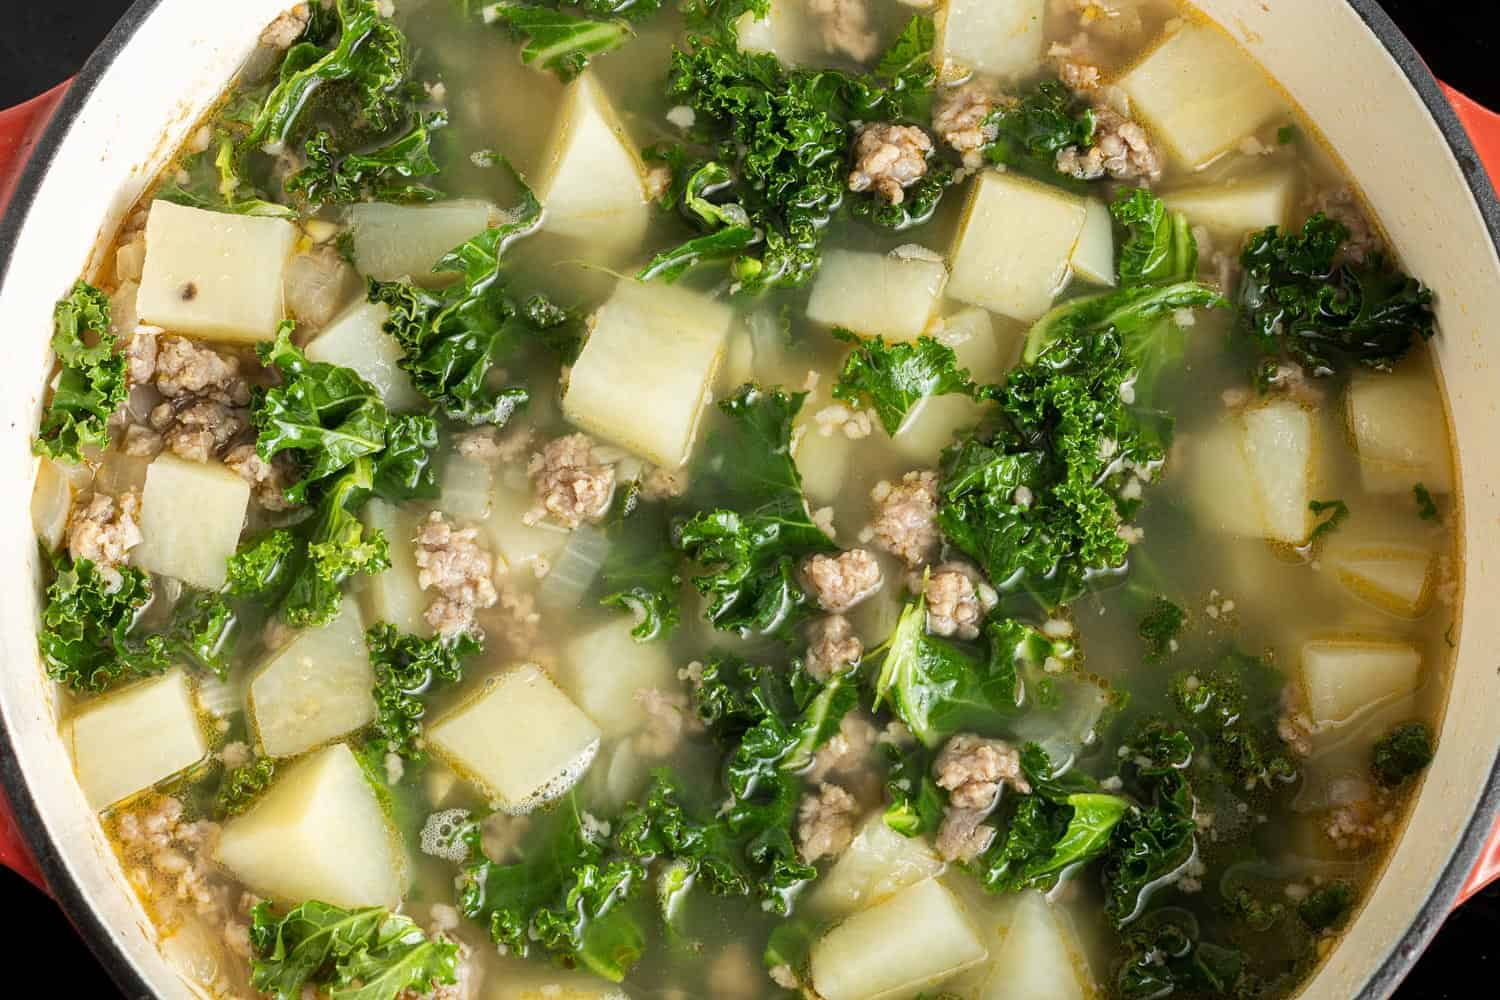 Kale, sausage, and potatoes in the broth.